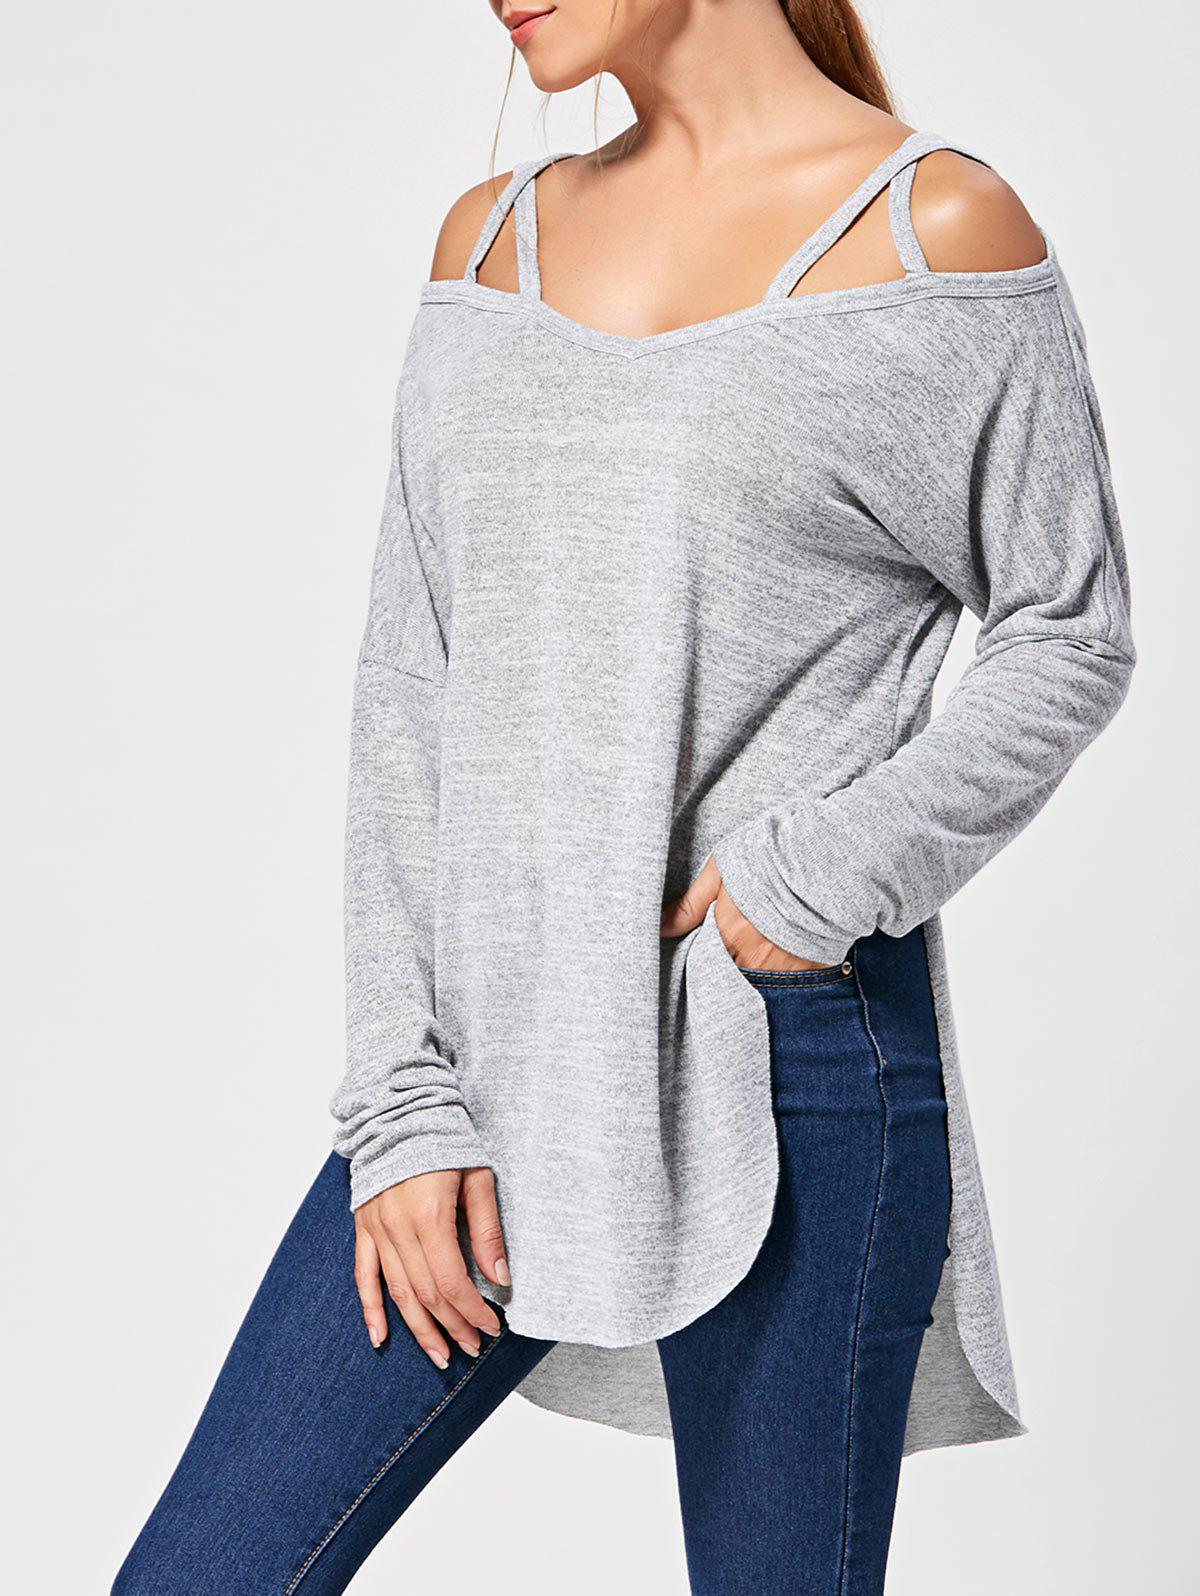 Lattice Long Sleeve High Low TopWOMEN<br><br>Size: XL; Color: GRAY; Material: Polyester,Spandex; Shirt Length: Long; Sleeve Length: Full; Collar: Sweetheart Neck; Style: Fashion; Pattern Type: Solid; Season: Fall,Spring; Weight: 0.3200kg; Package Contents: 1 x T-shirt;